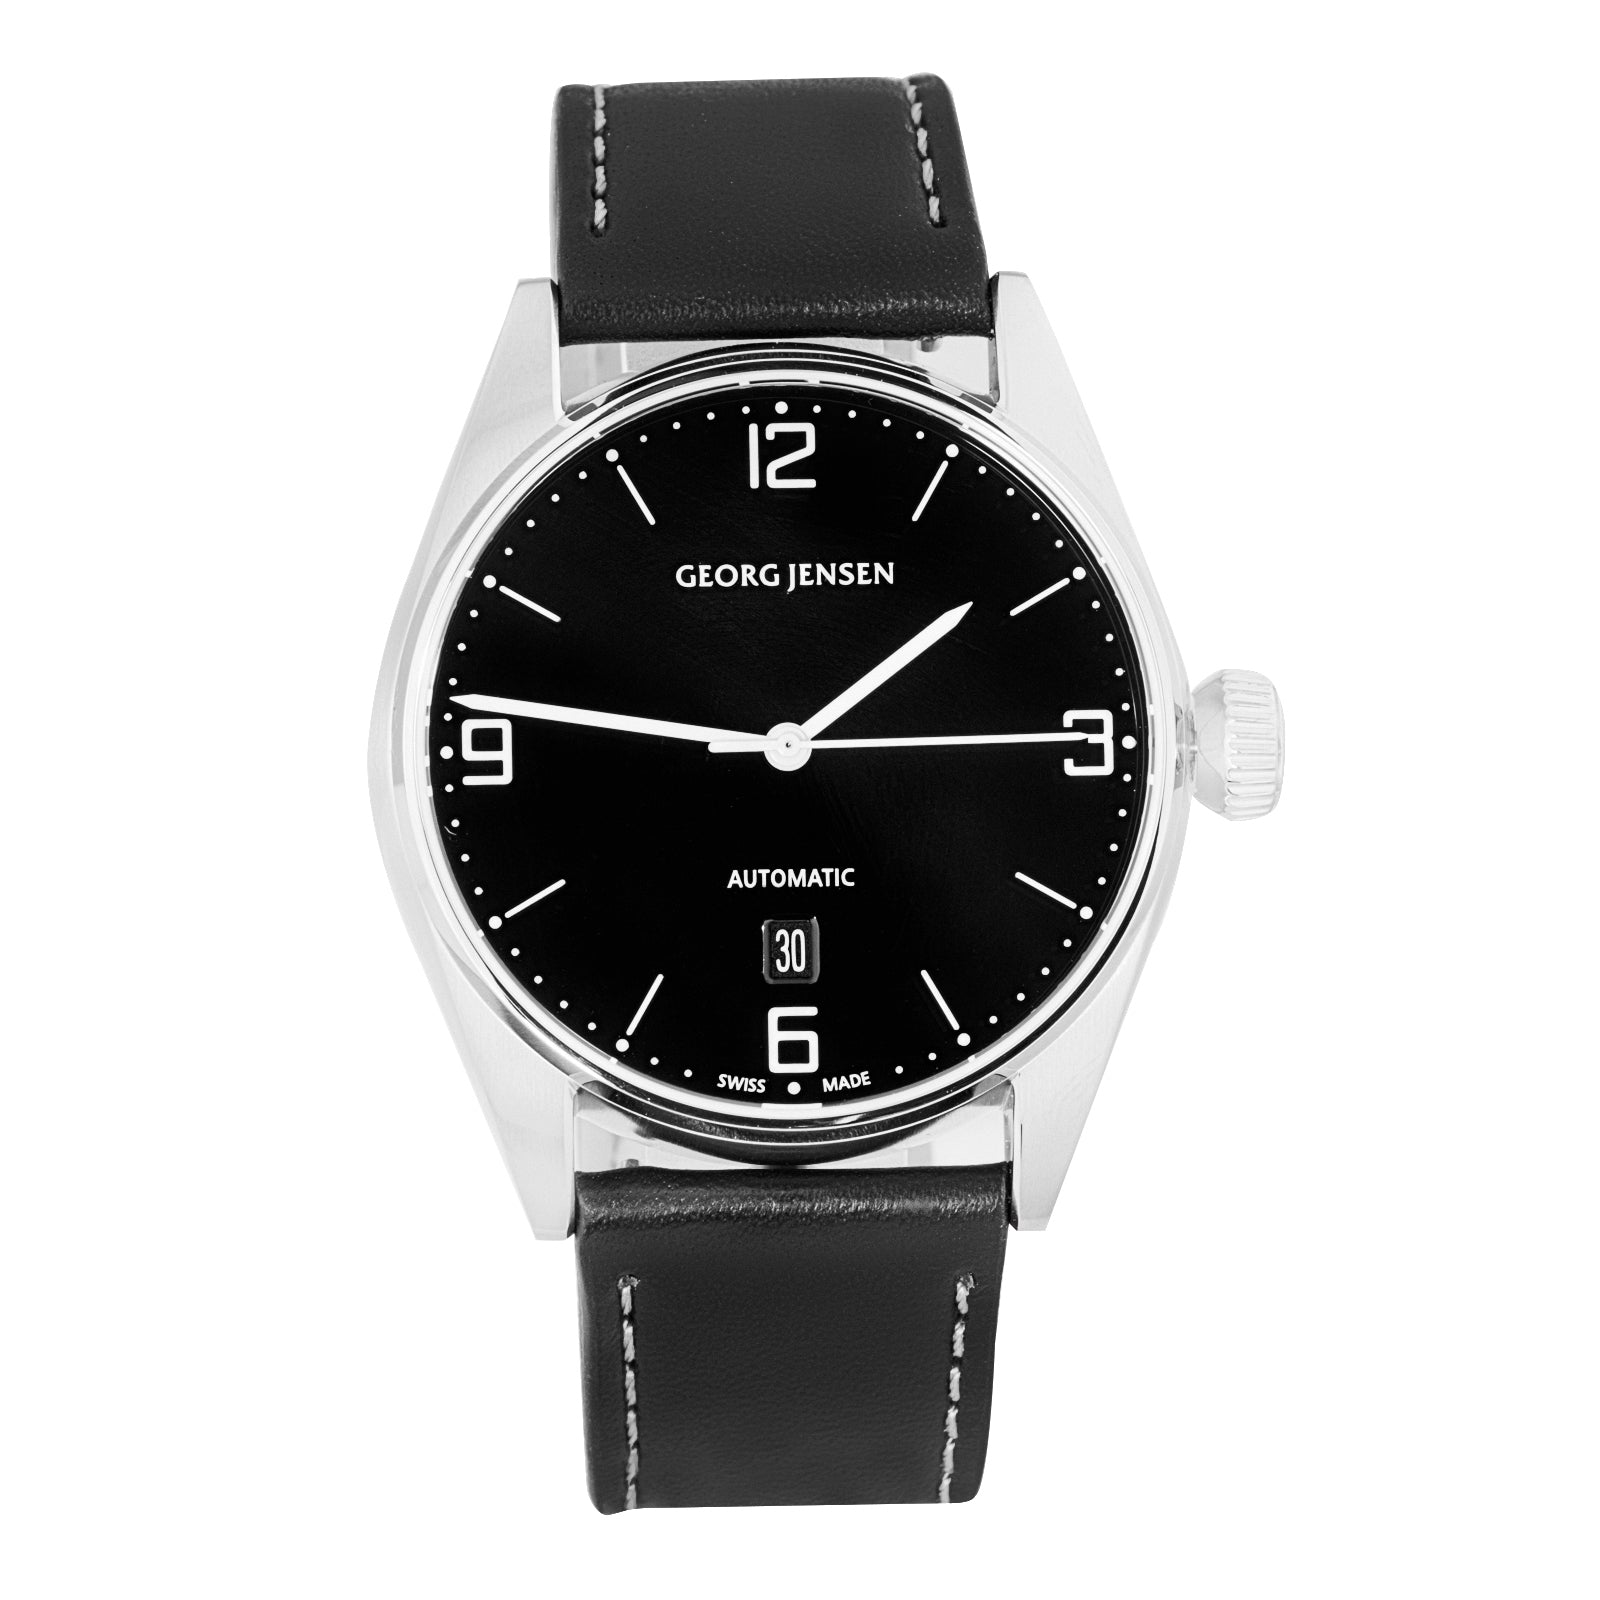 Georg Jensen Delta Automatic Swiss Made Danish Brand Men's Automatic Watch 3575592